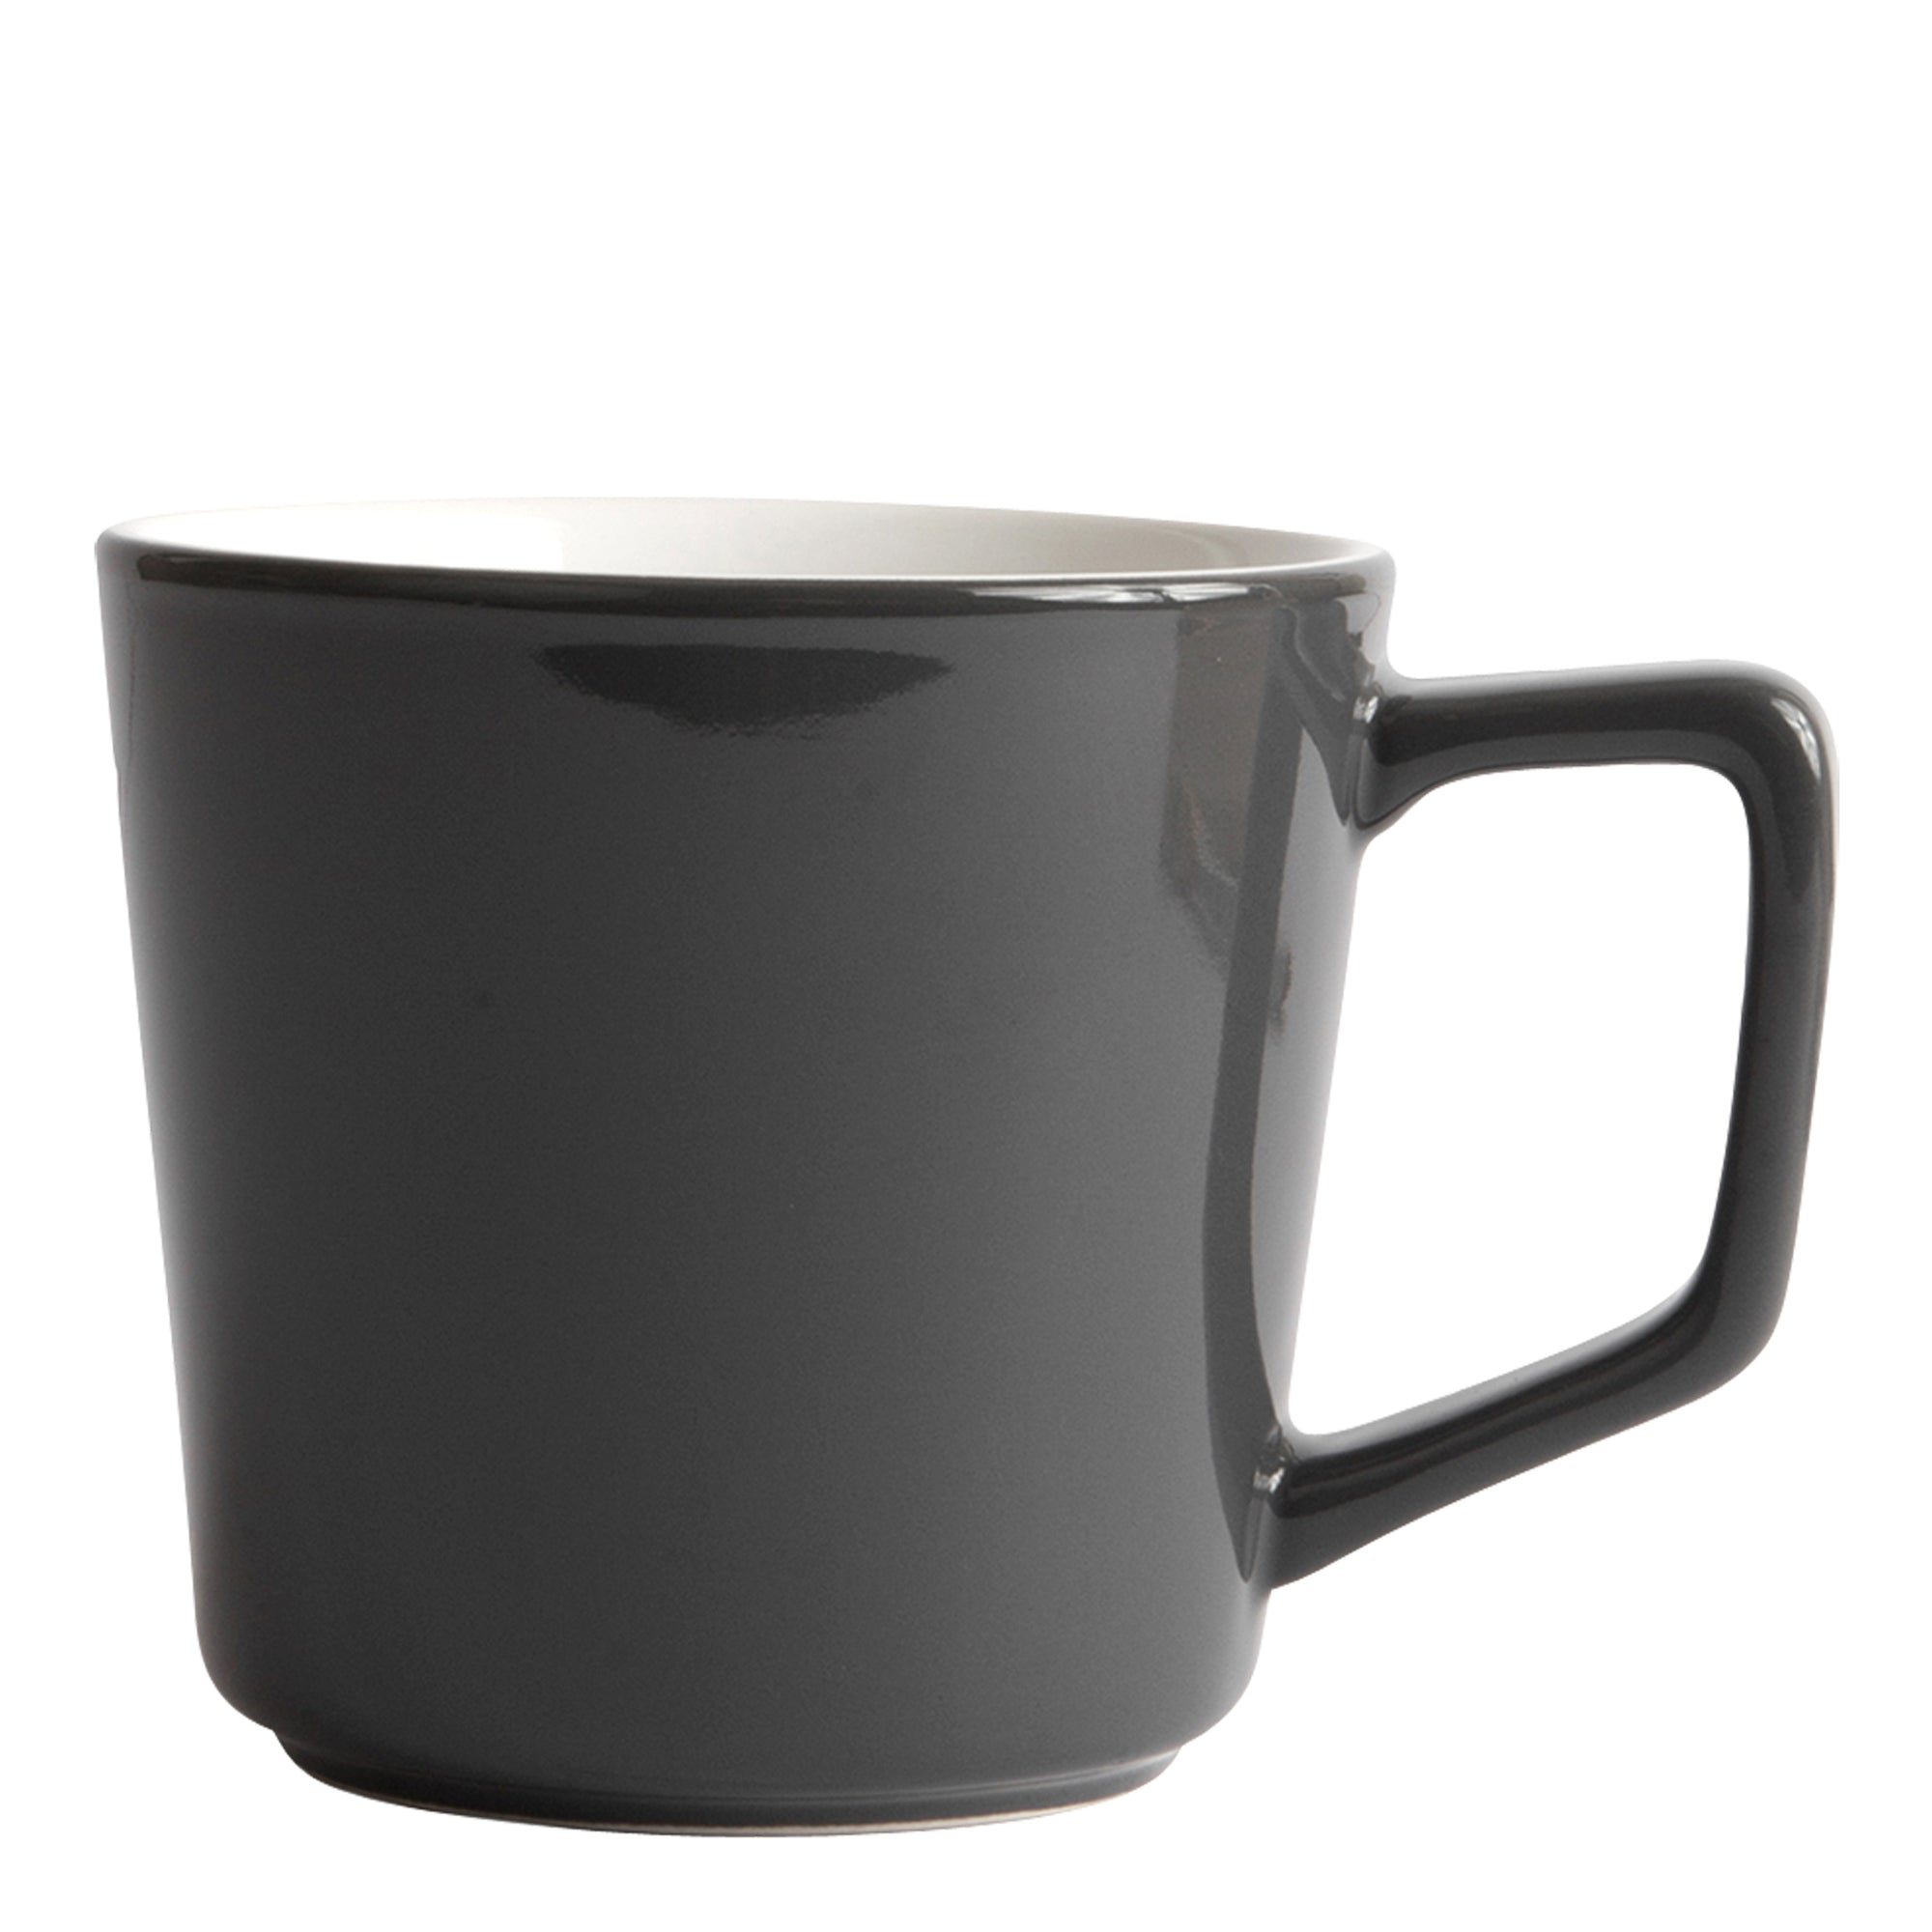 Porcelain Cup - Angled Mug Gray 12oz/ 36cl - Created Co - Espresso Gear